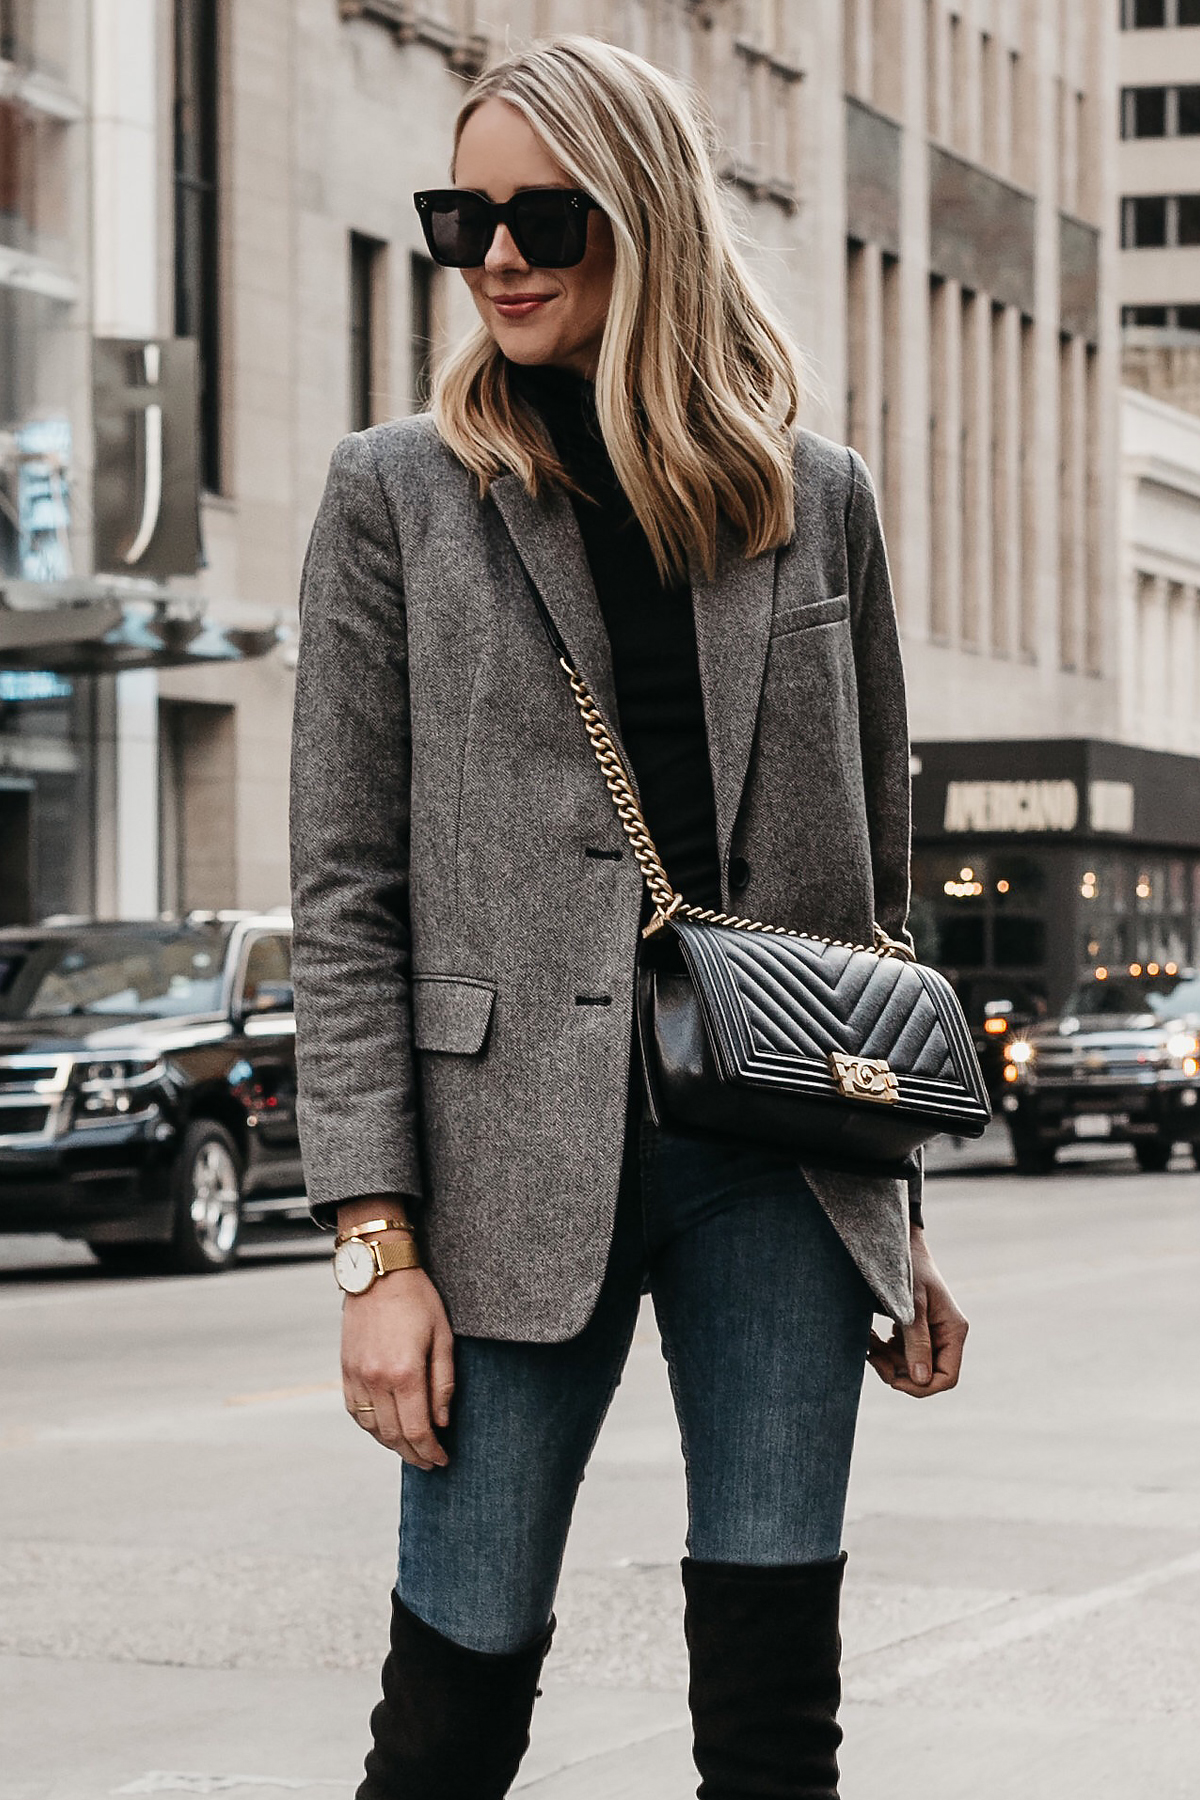 Blonde Woman Wearing Everlane Oversized Grey Blazer Chanel Black Boy Bag Denim Jeans Fashion Jackson Dallas Blogger Fashion Blogger Street Style